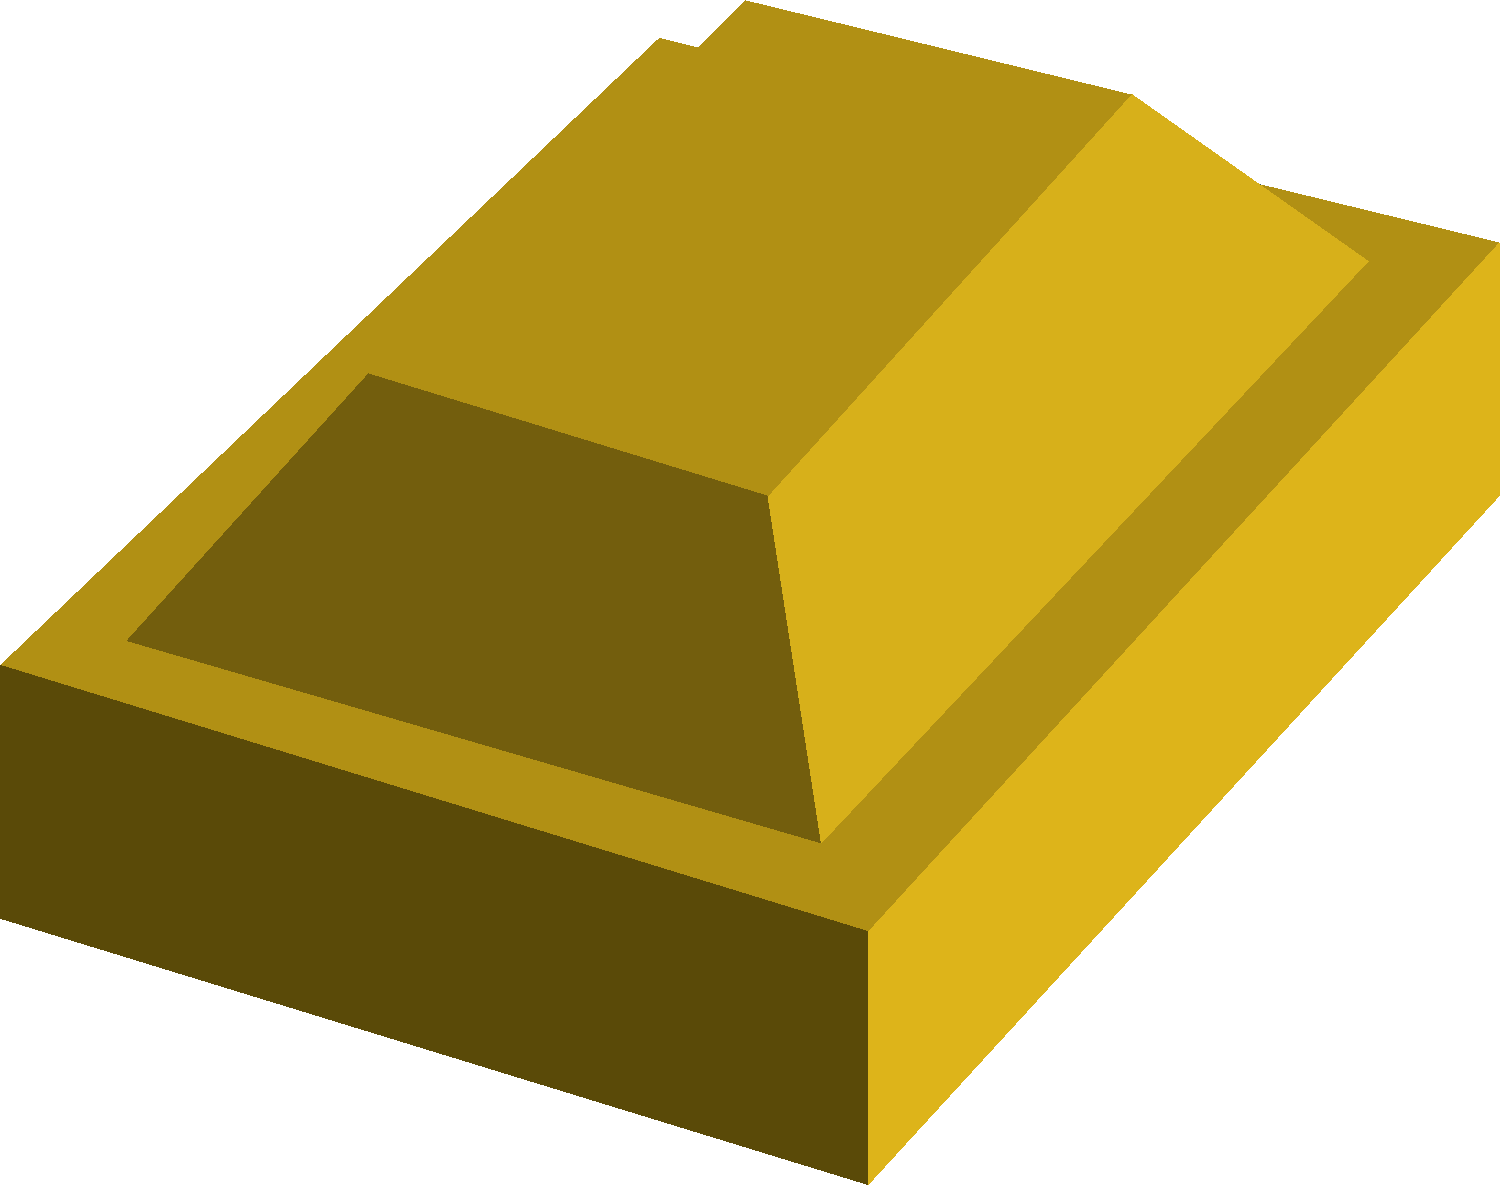 Gold bar detail